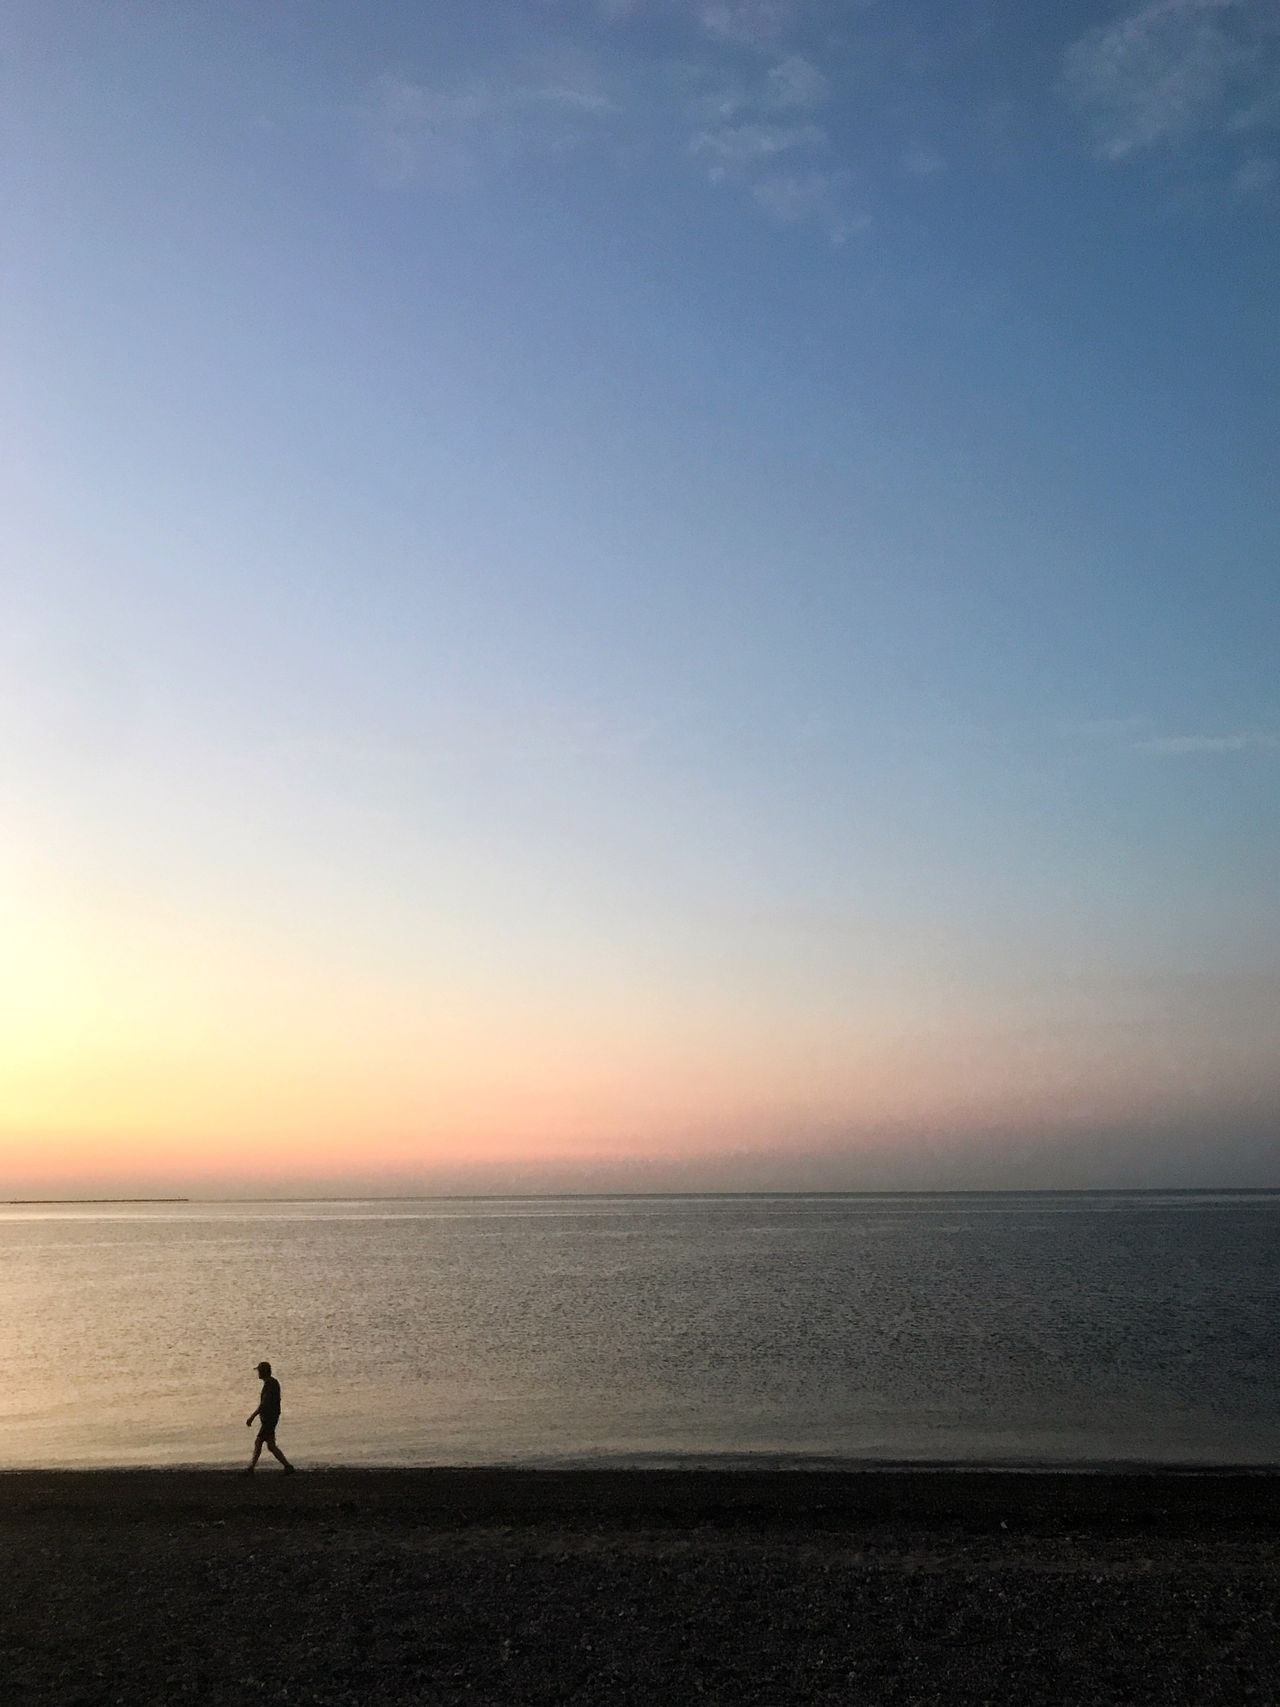 Sea Beach Sunset Horizon Over Water Scenics Beauty In Nature Silhouette Tranquil Scene Nature Tranquility Water Sand Sky Outdoors One Person Full Length Day People